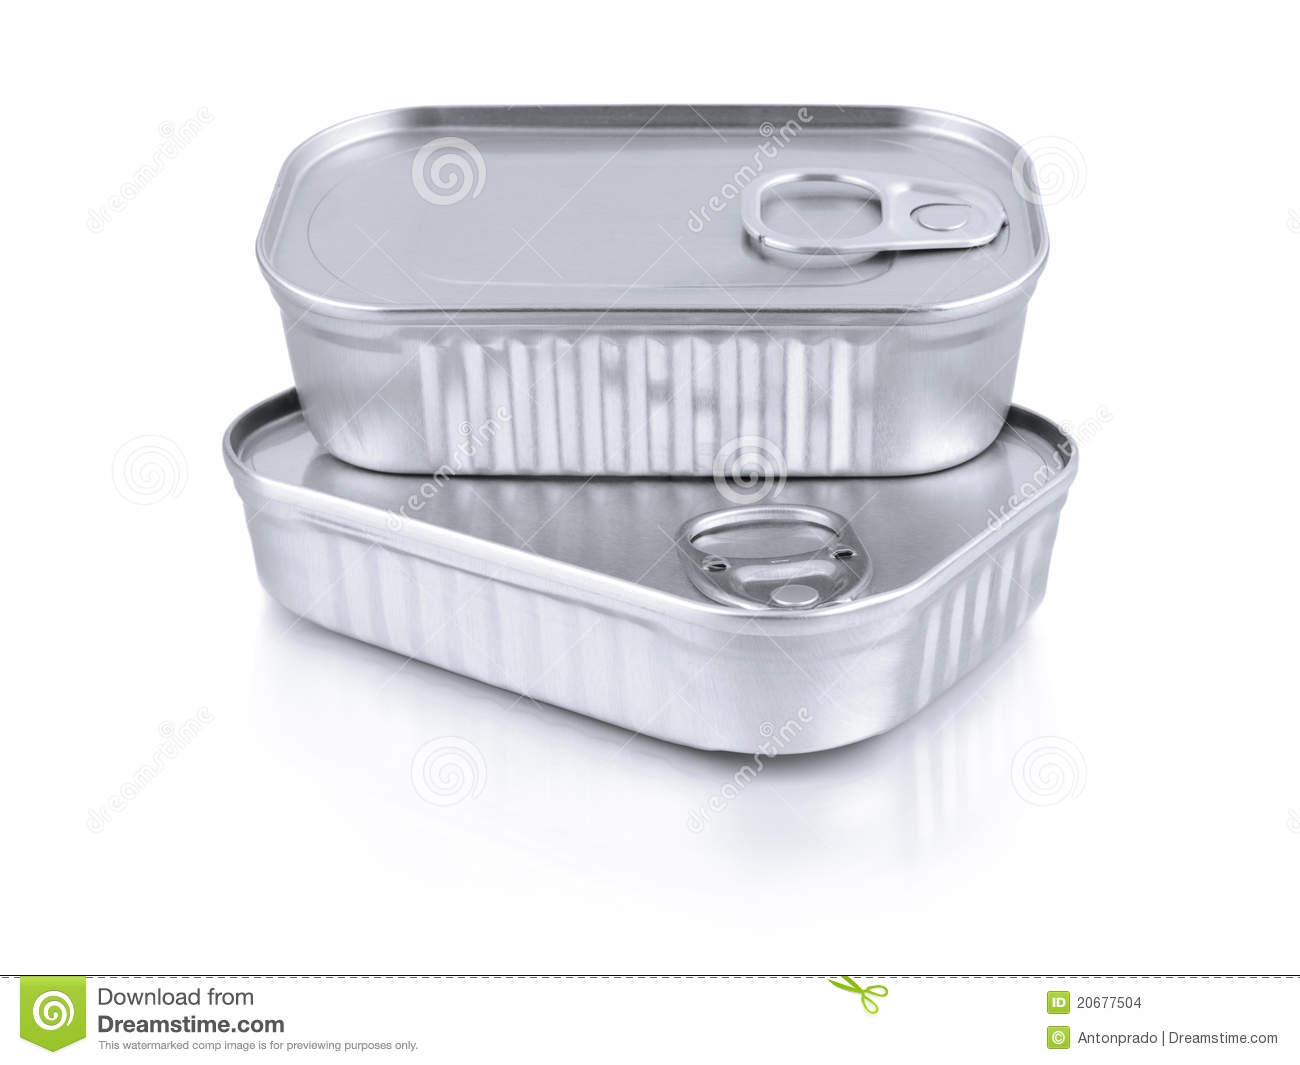 Sardine cans stock images image 20677504 Empty sardine cans